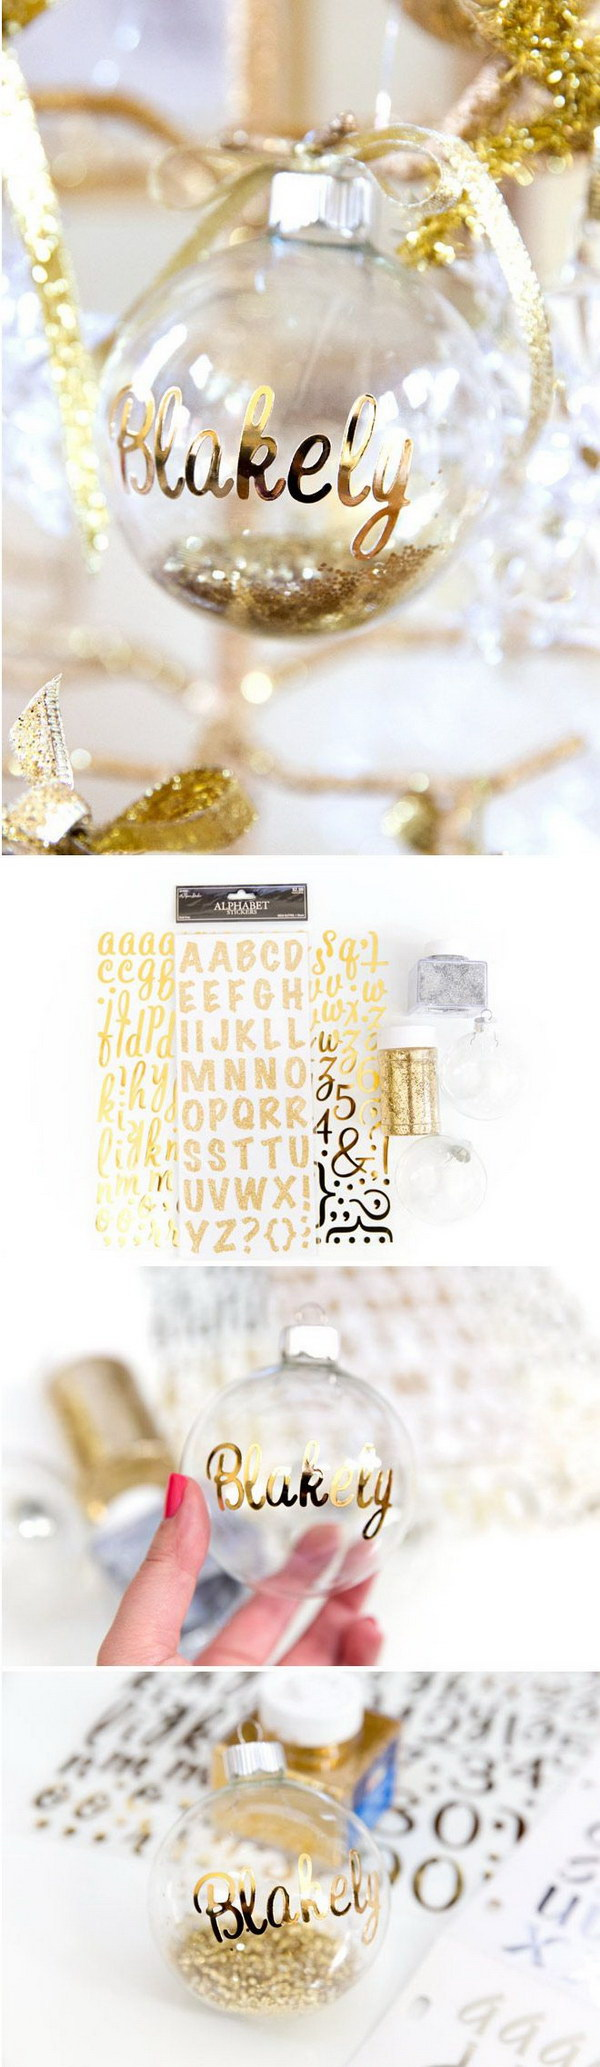 DIY Personalized Ornaments For Christmas.